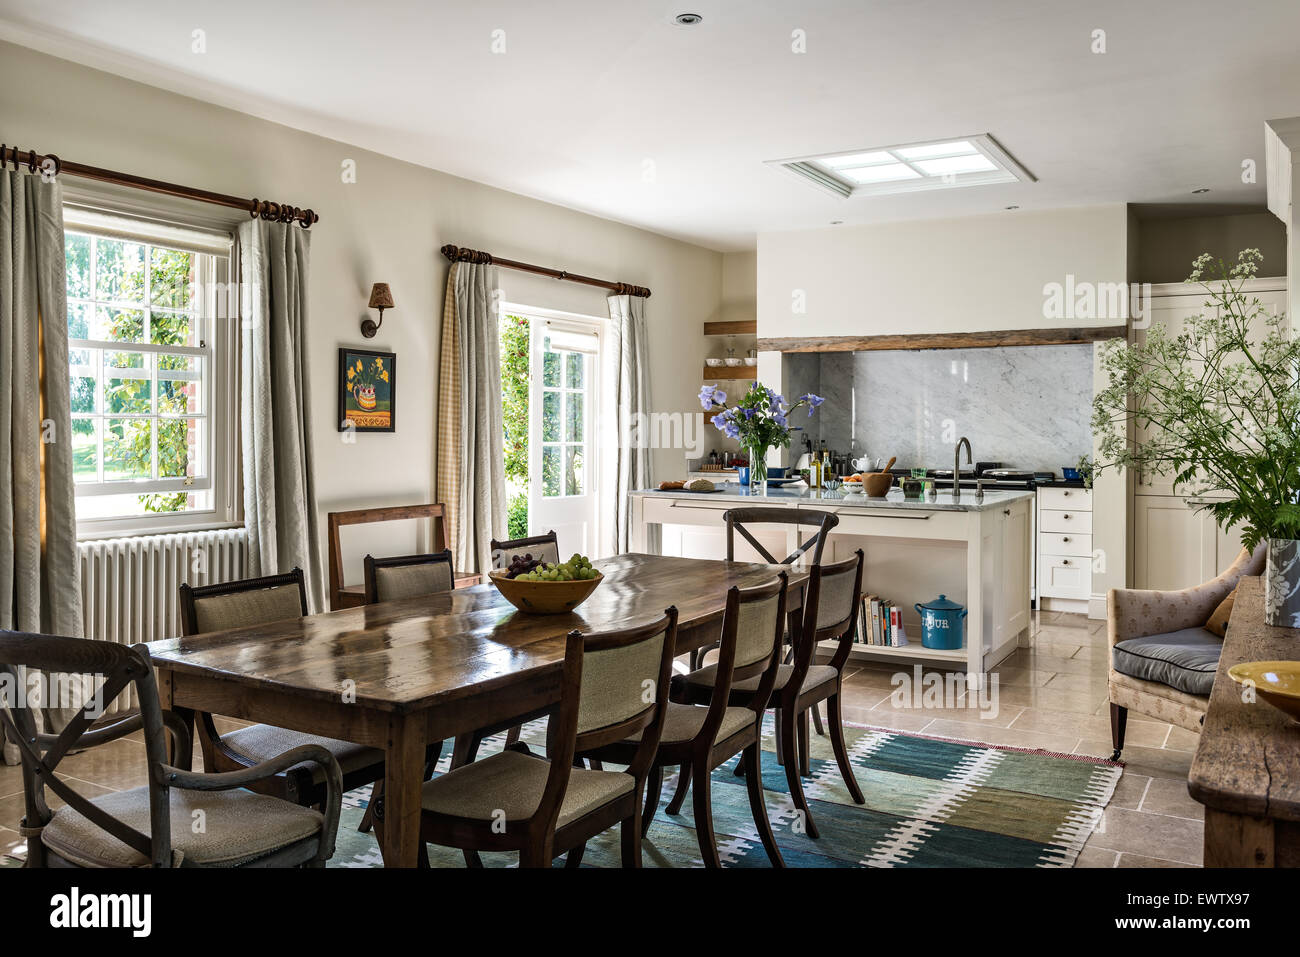 Antique Dining Table With Chairs In Open Plan Kitchen Dining